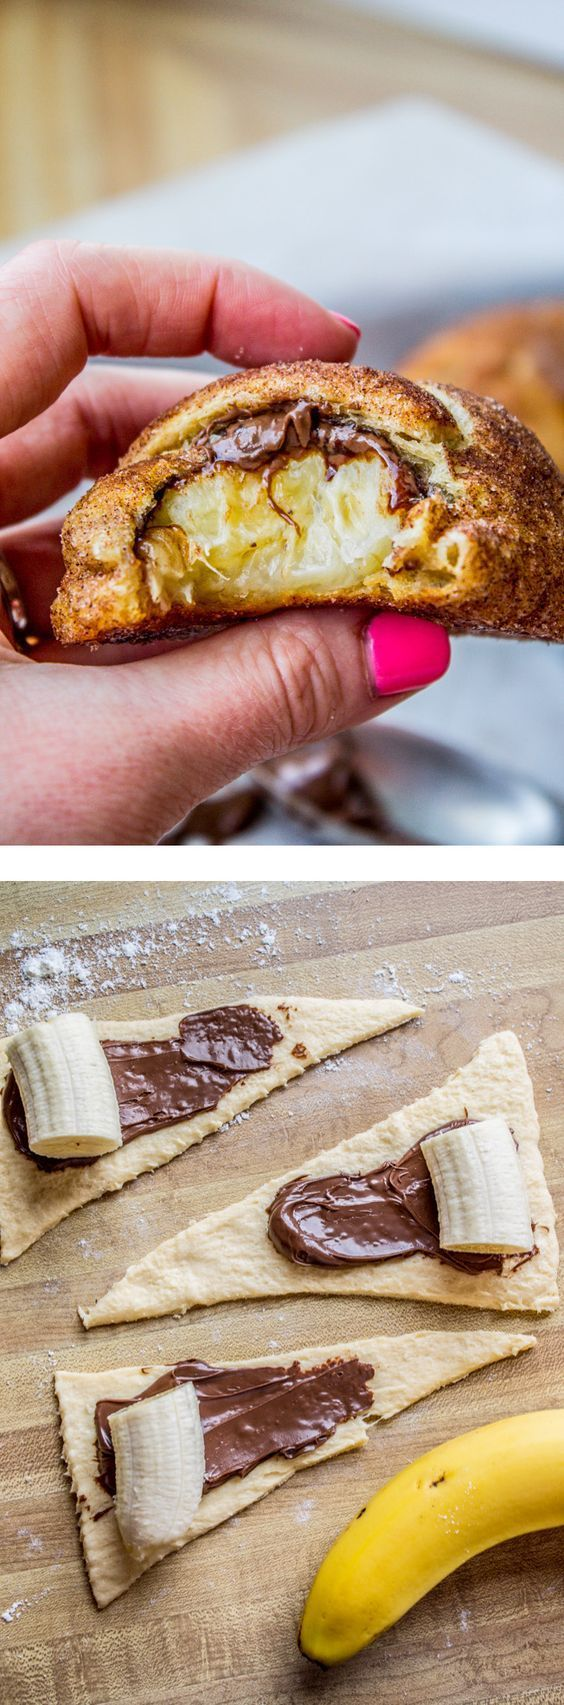 Stuff a buttery crescent roll with banana and a schmear of Nutella roll it in cinnamon sugar and bake. This is the easiest recipe for happiness in 10 minutes flat.